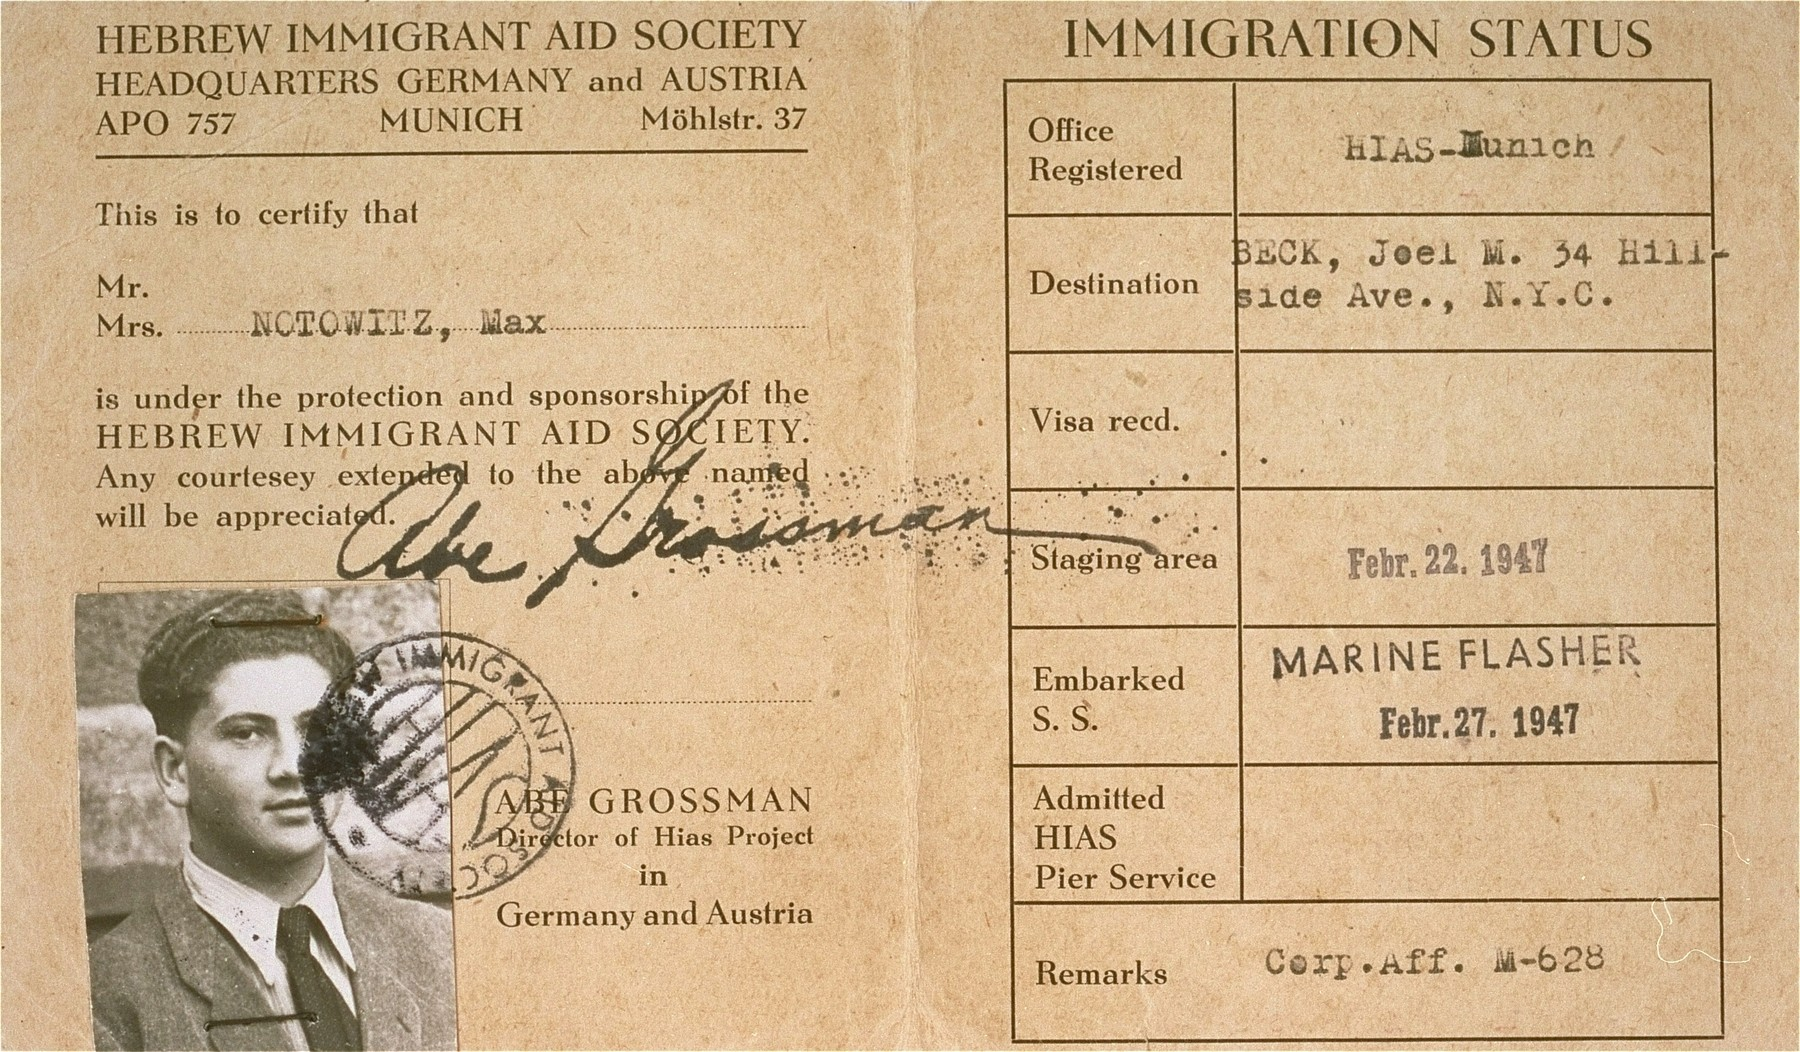 HIAS immigration certificate issued to Manius Notowicz in Munich.  The document states that Notowicz will travel on the Marine Flasher on February 22, 1947 to New York City.